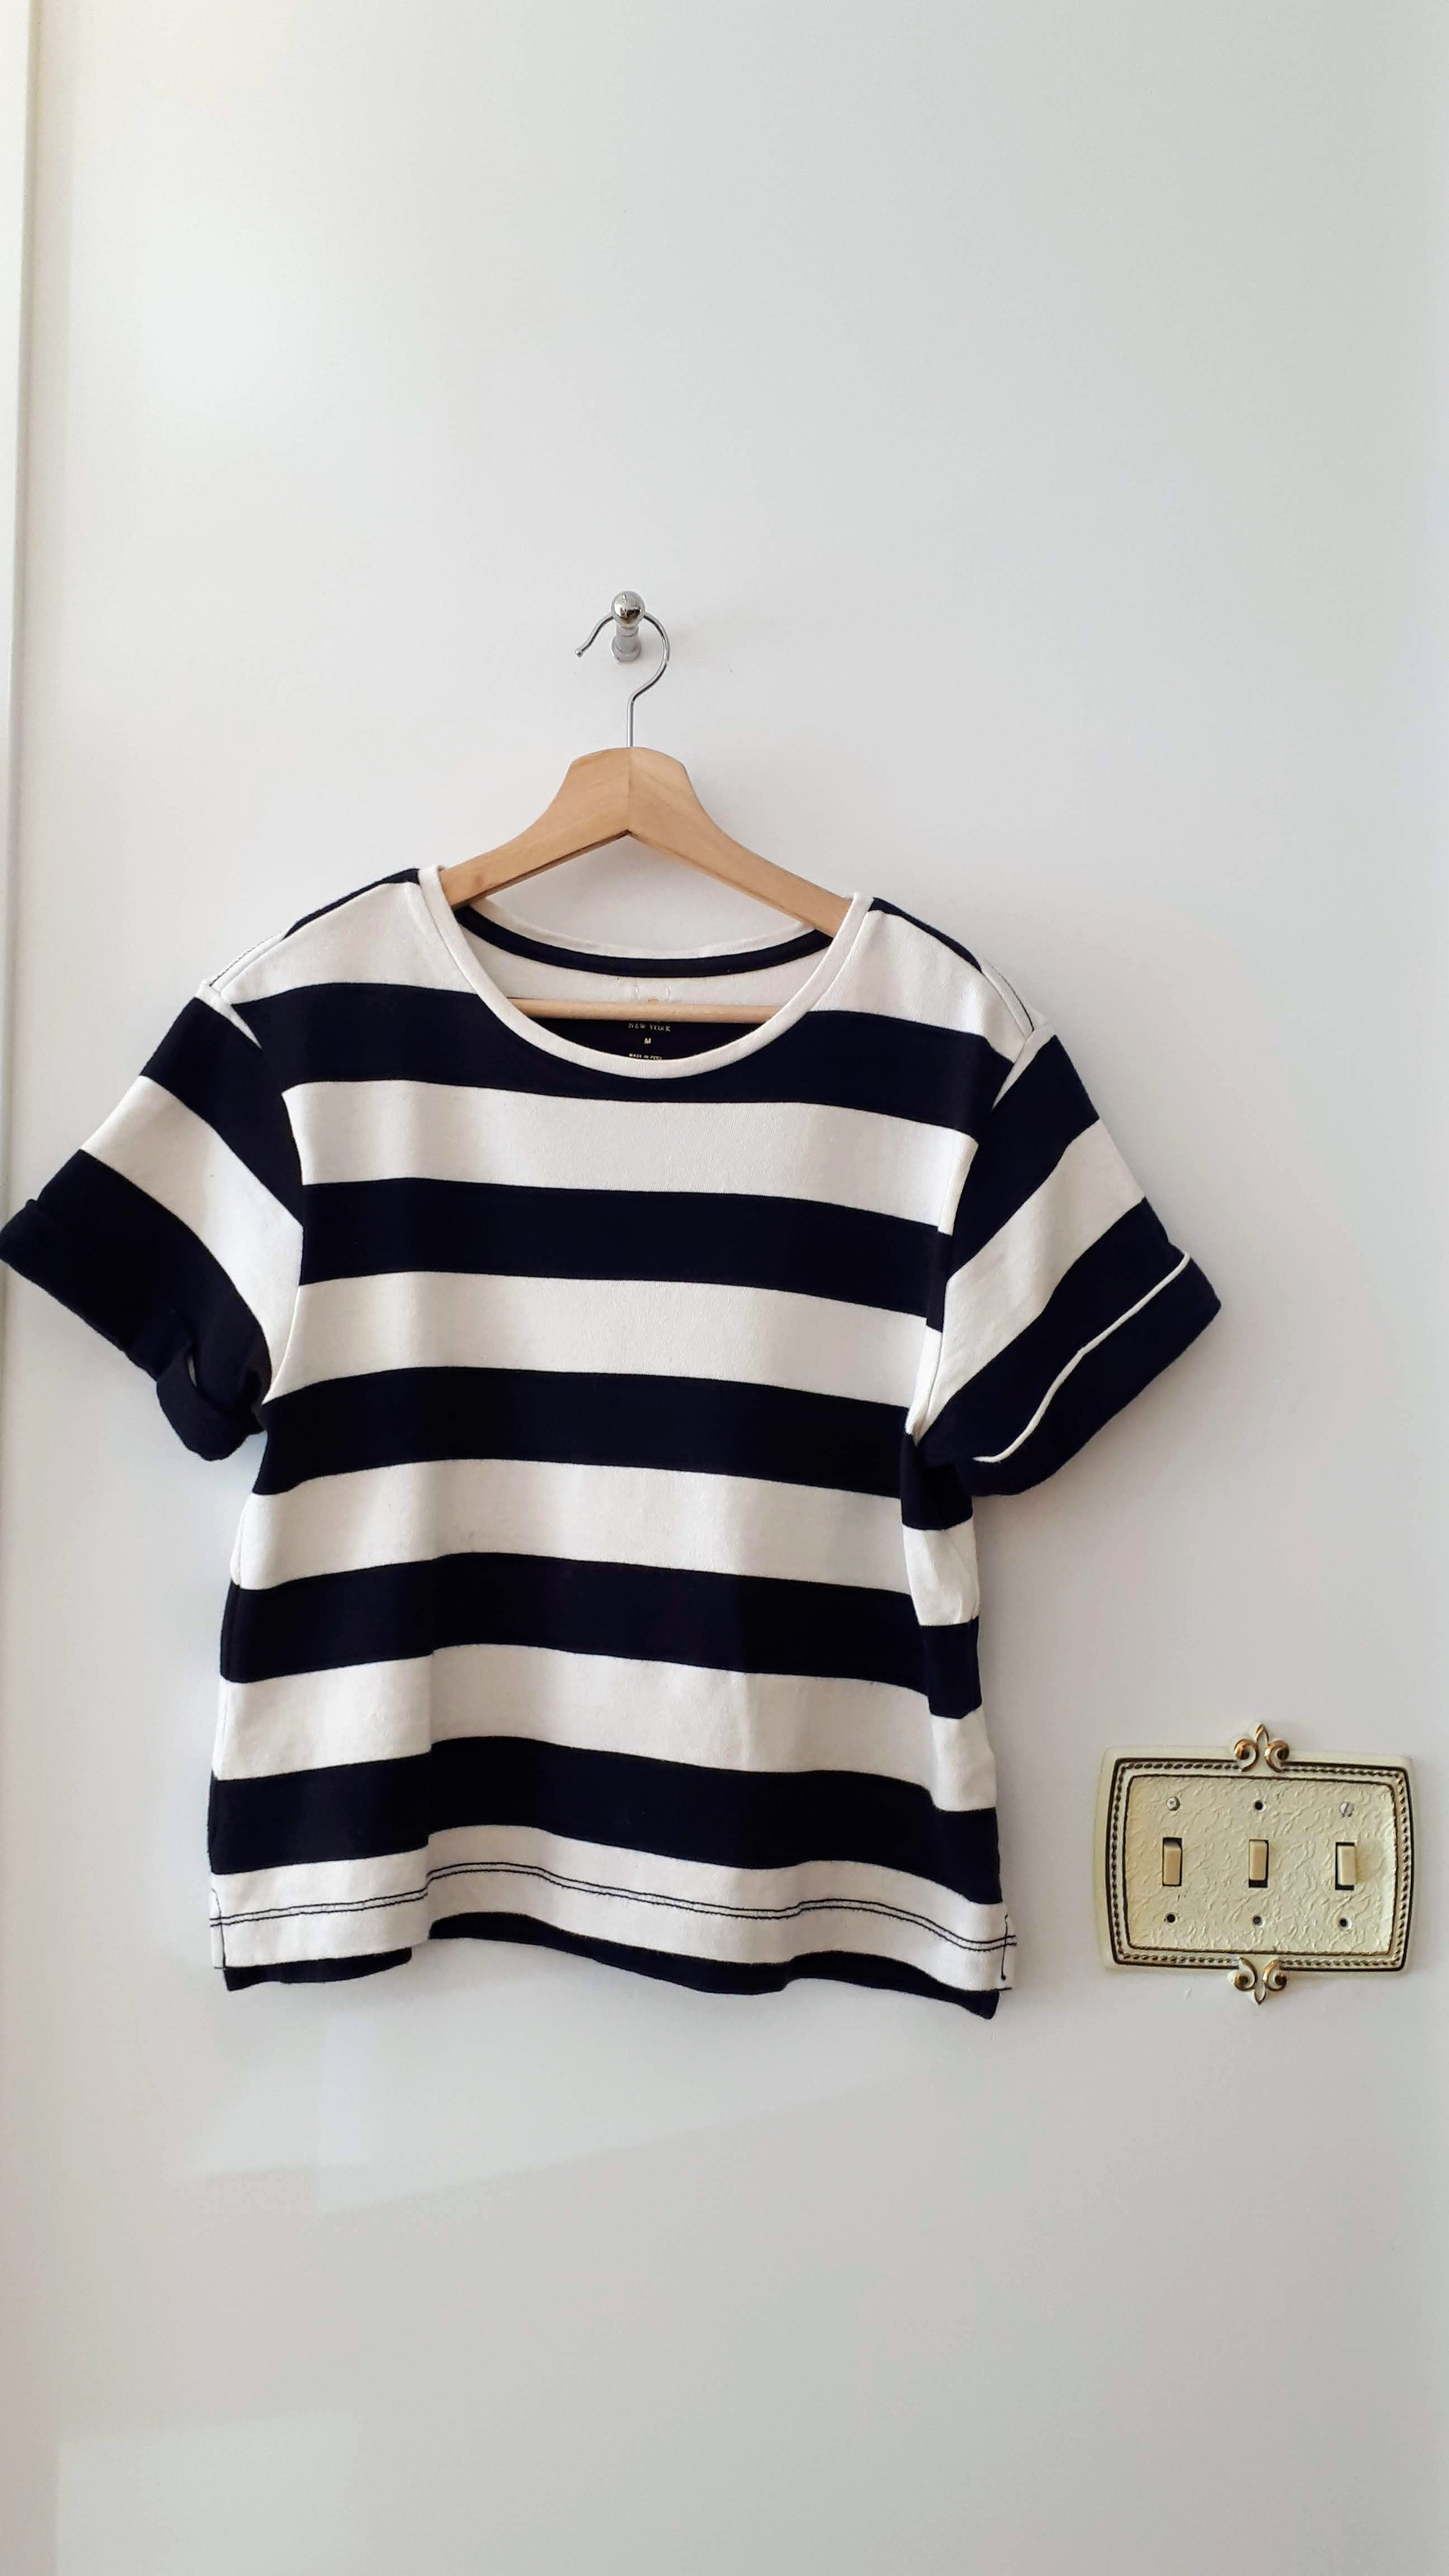 Kate Spade top; Size M, $40